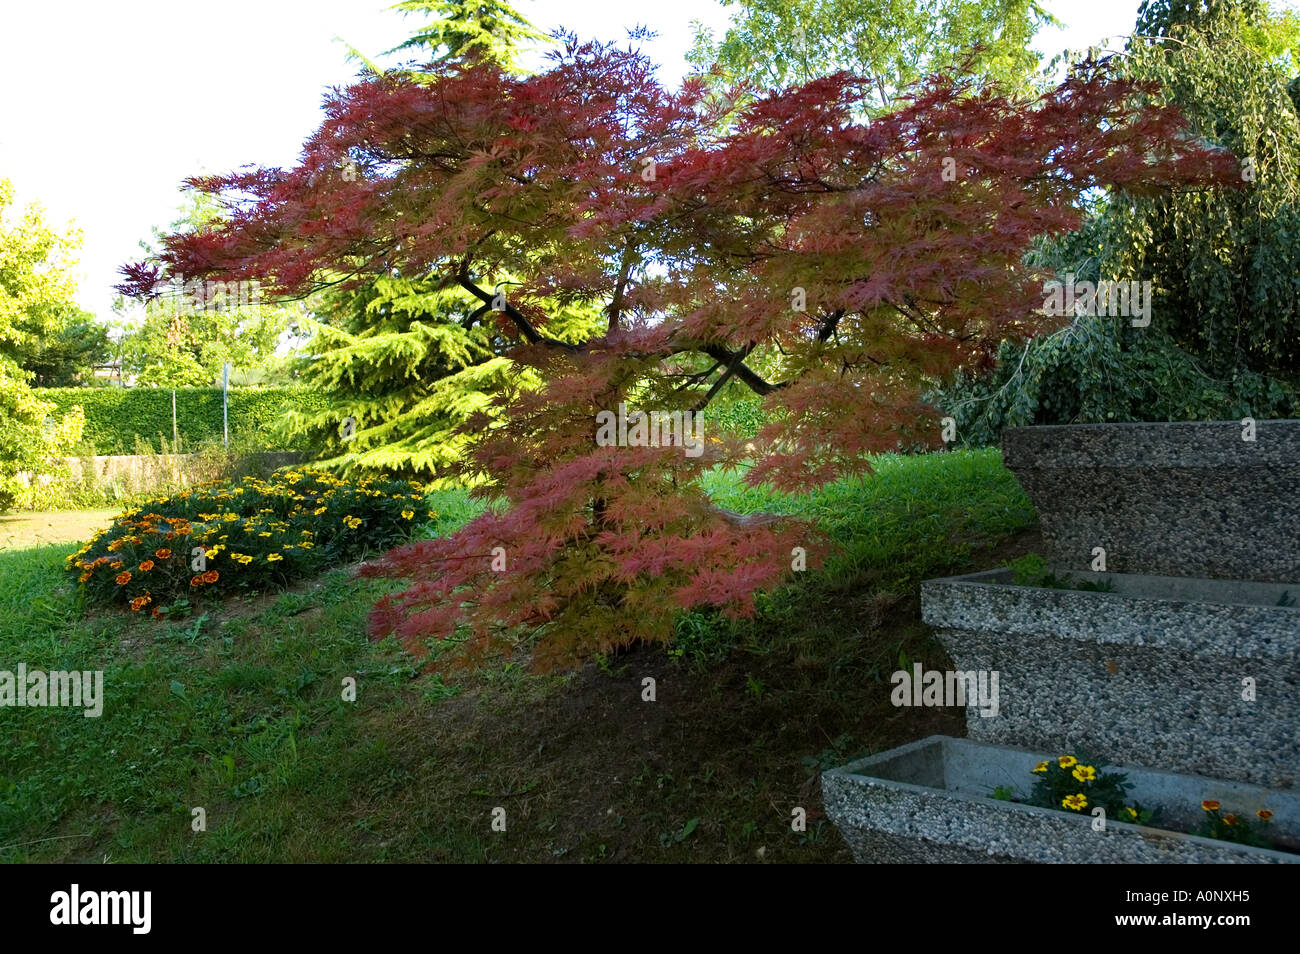 Maple Tree Leaves Garden Little Dwarf Trees Green Red Site Stock ...